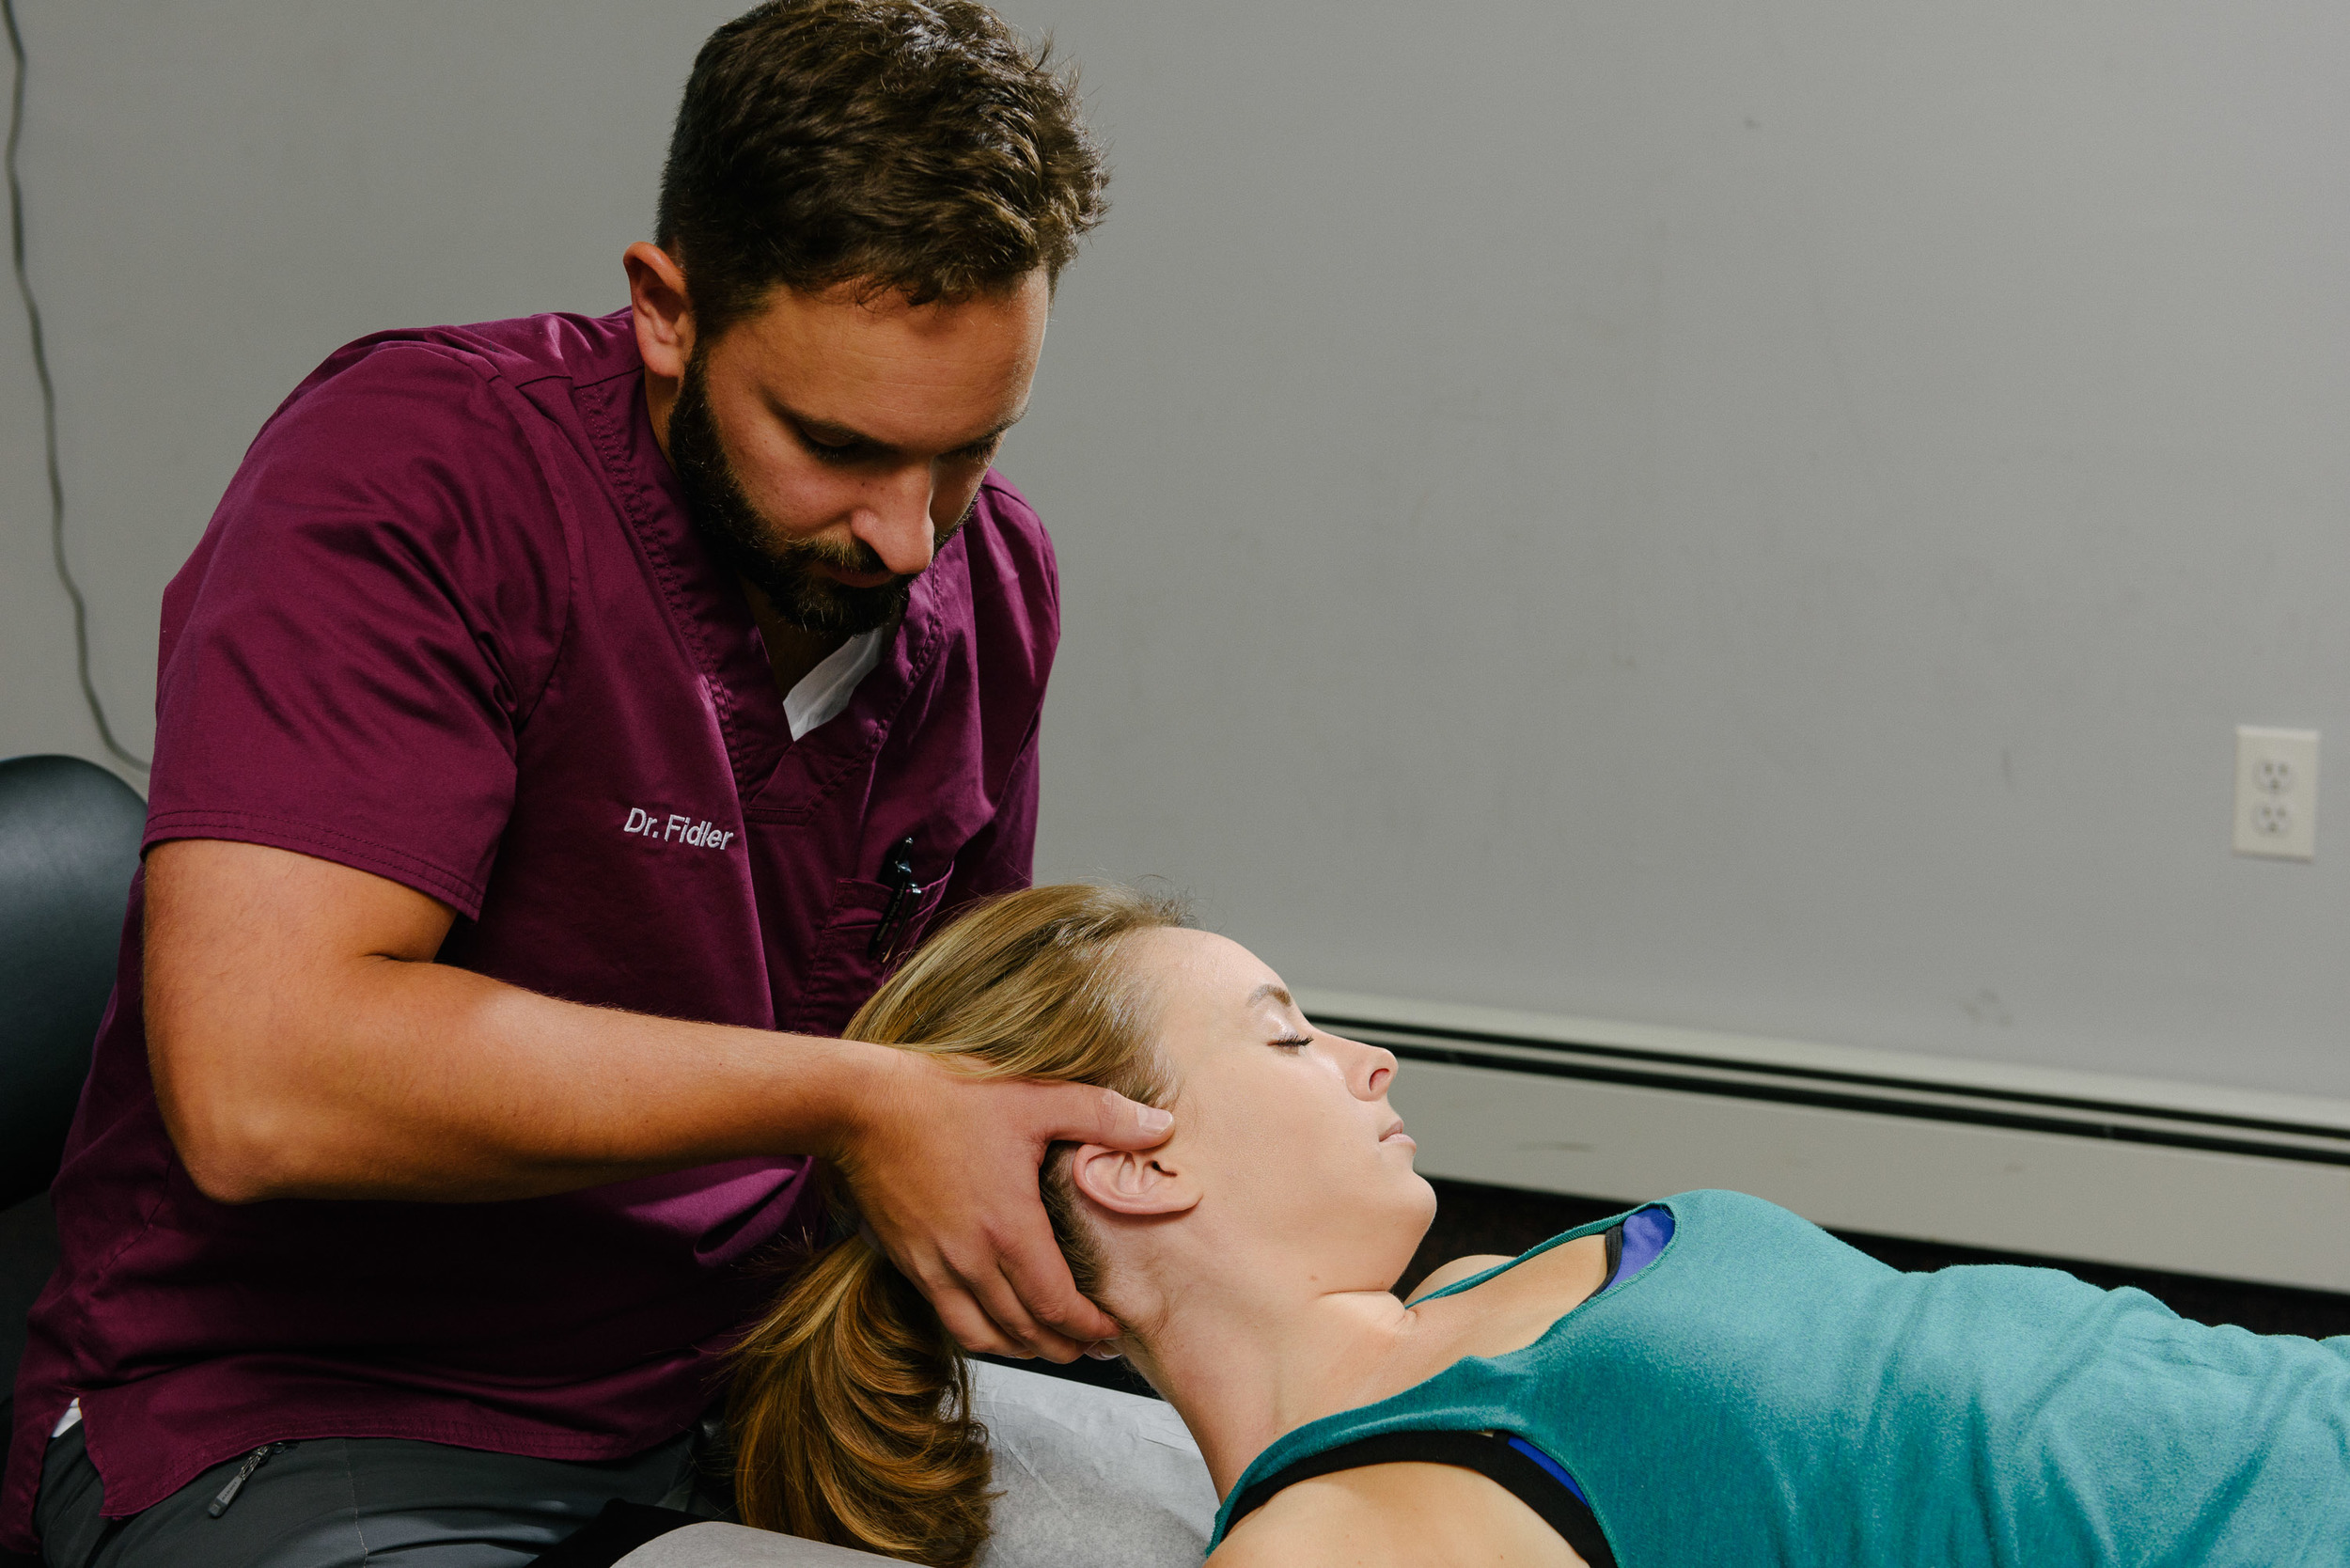 Dr. Fidler treats neck pain at Functional Rehab